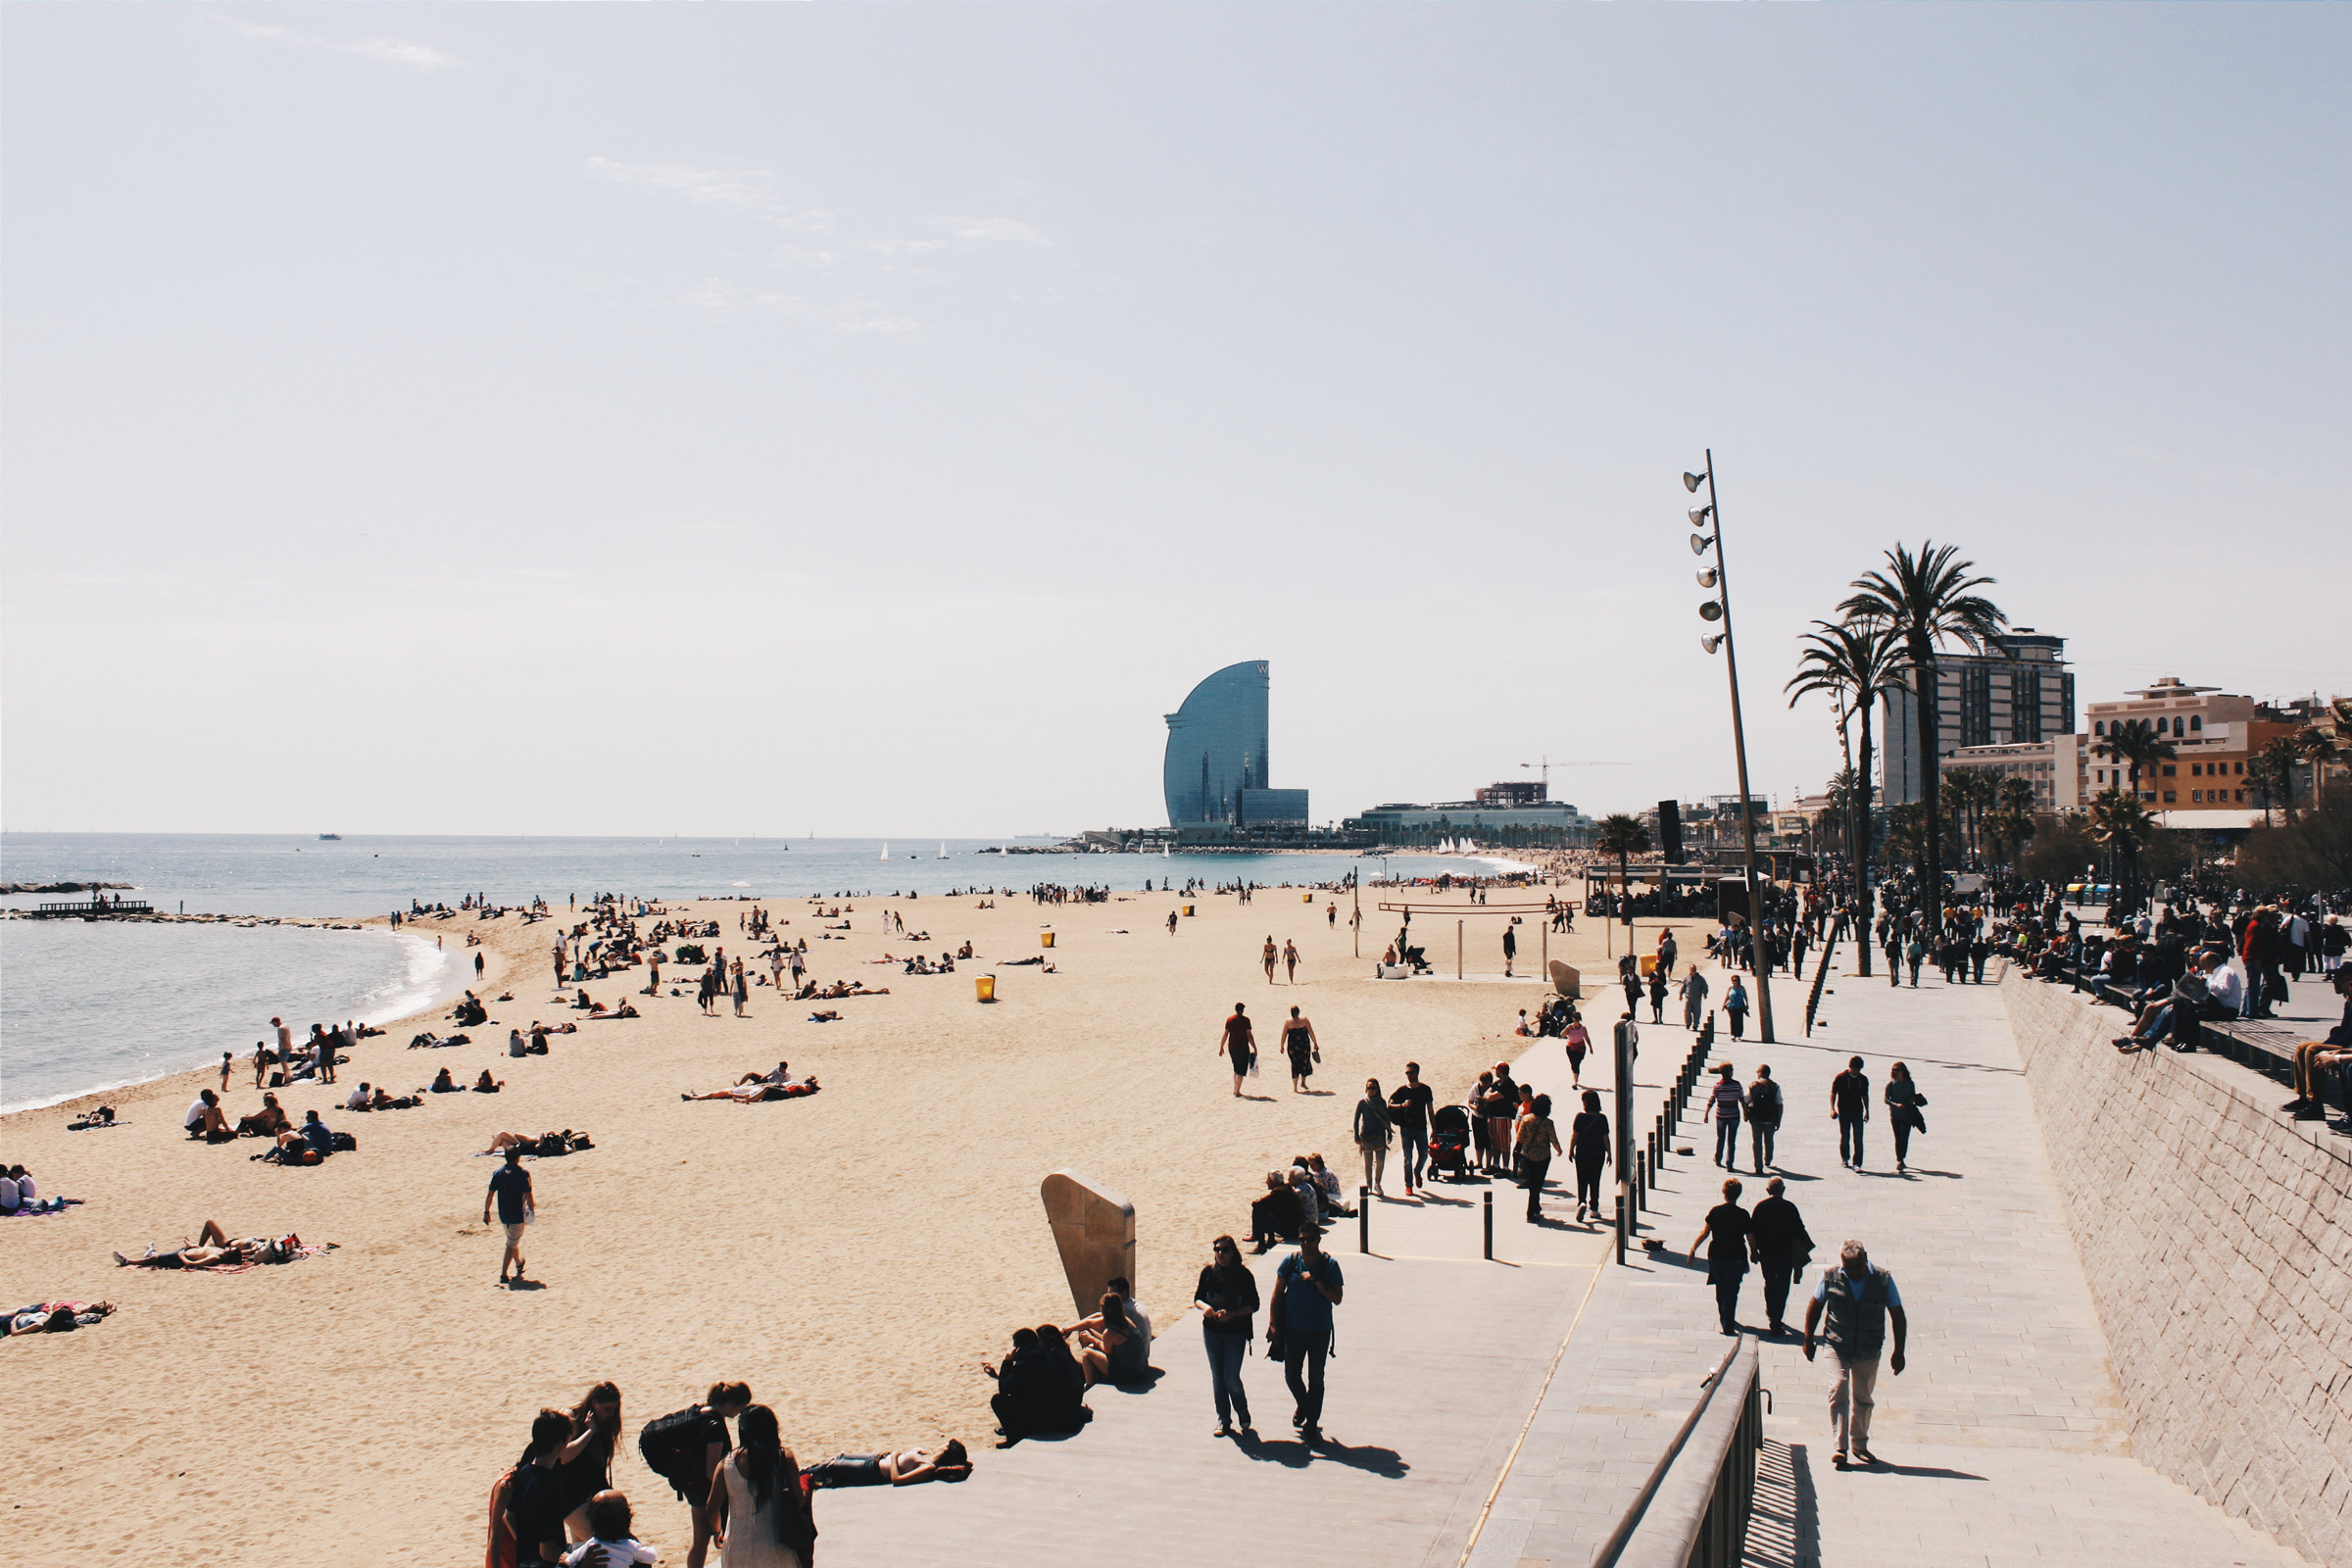 Barceloneta beach in Barcelona, Spain